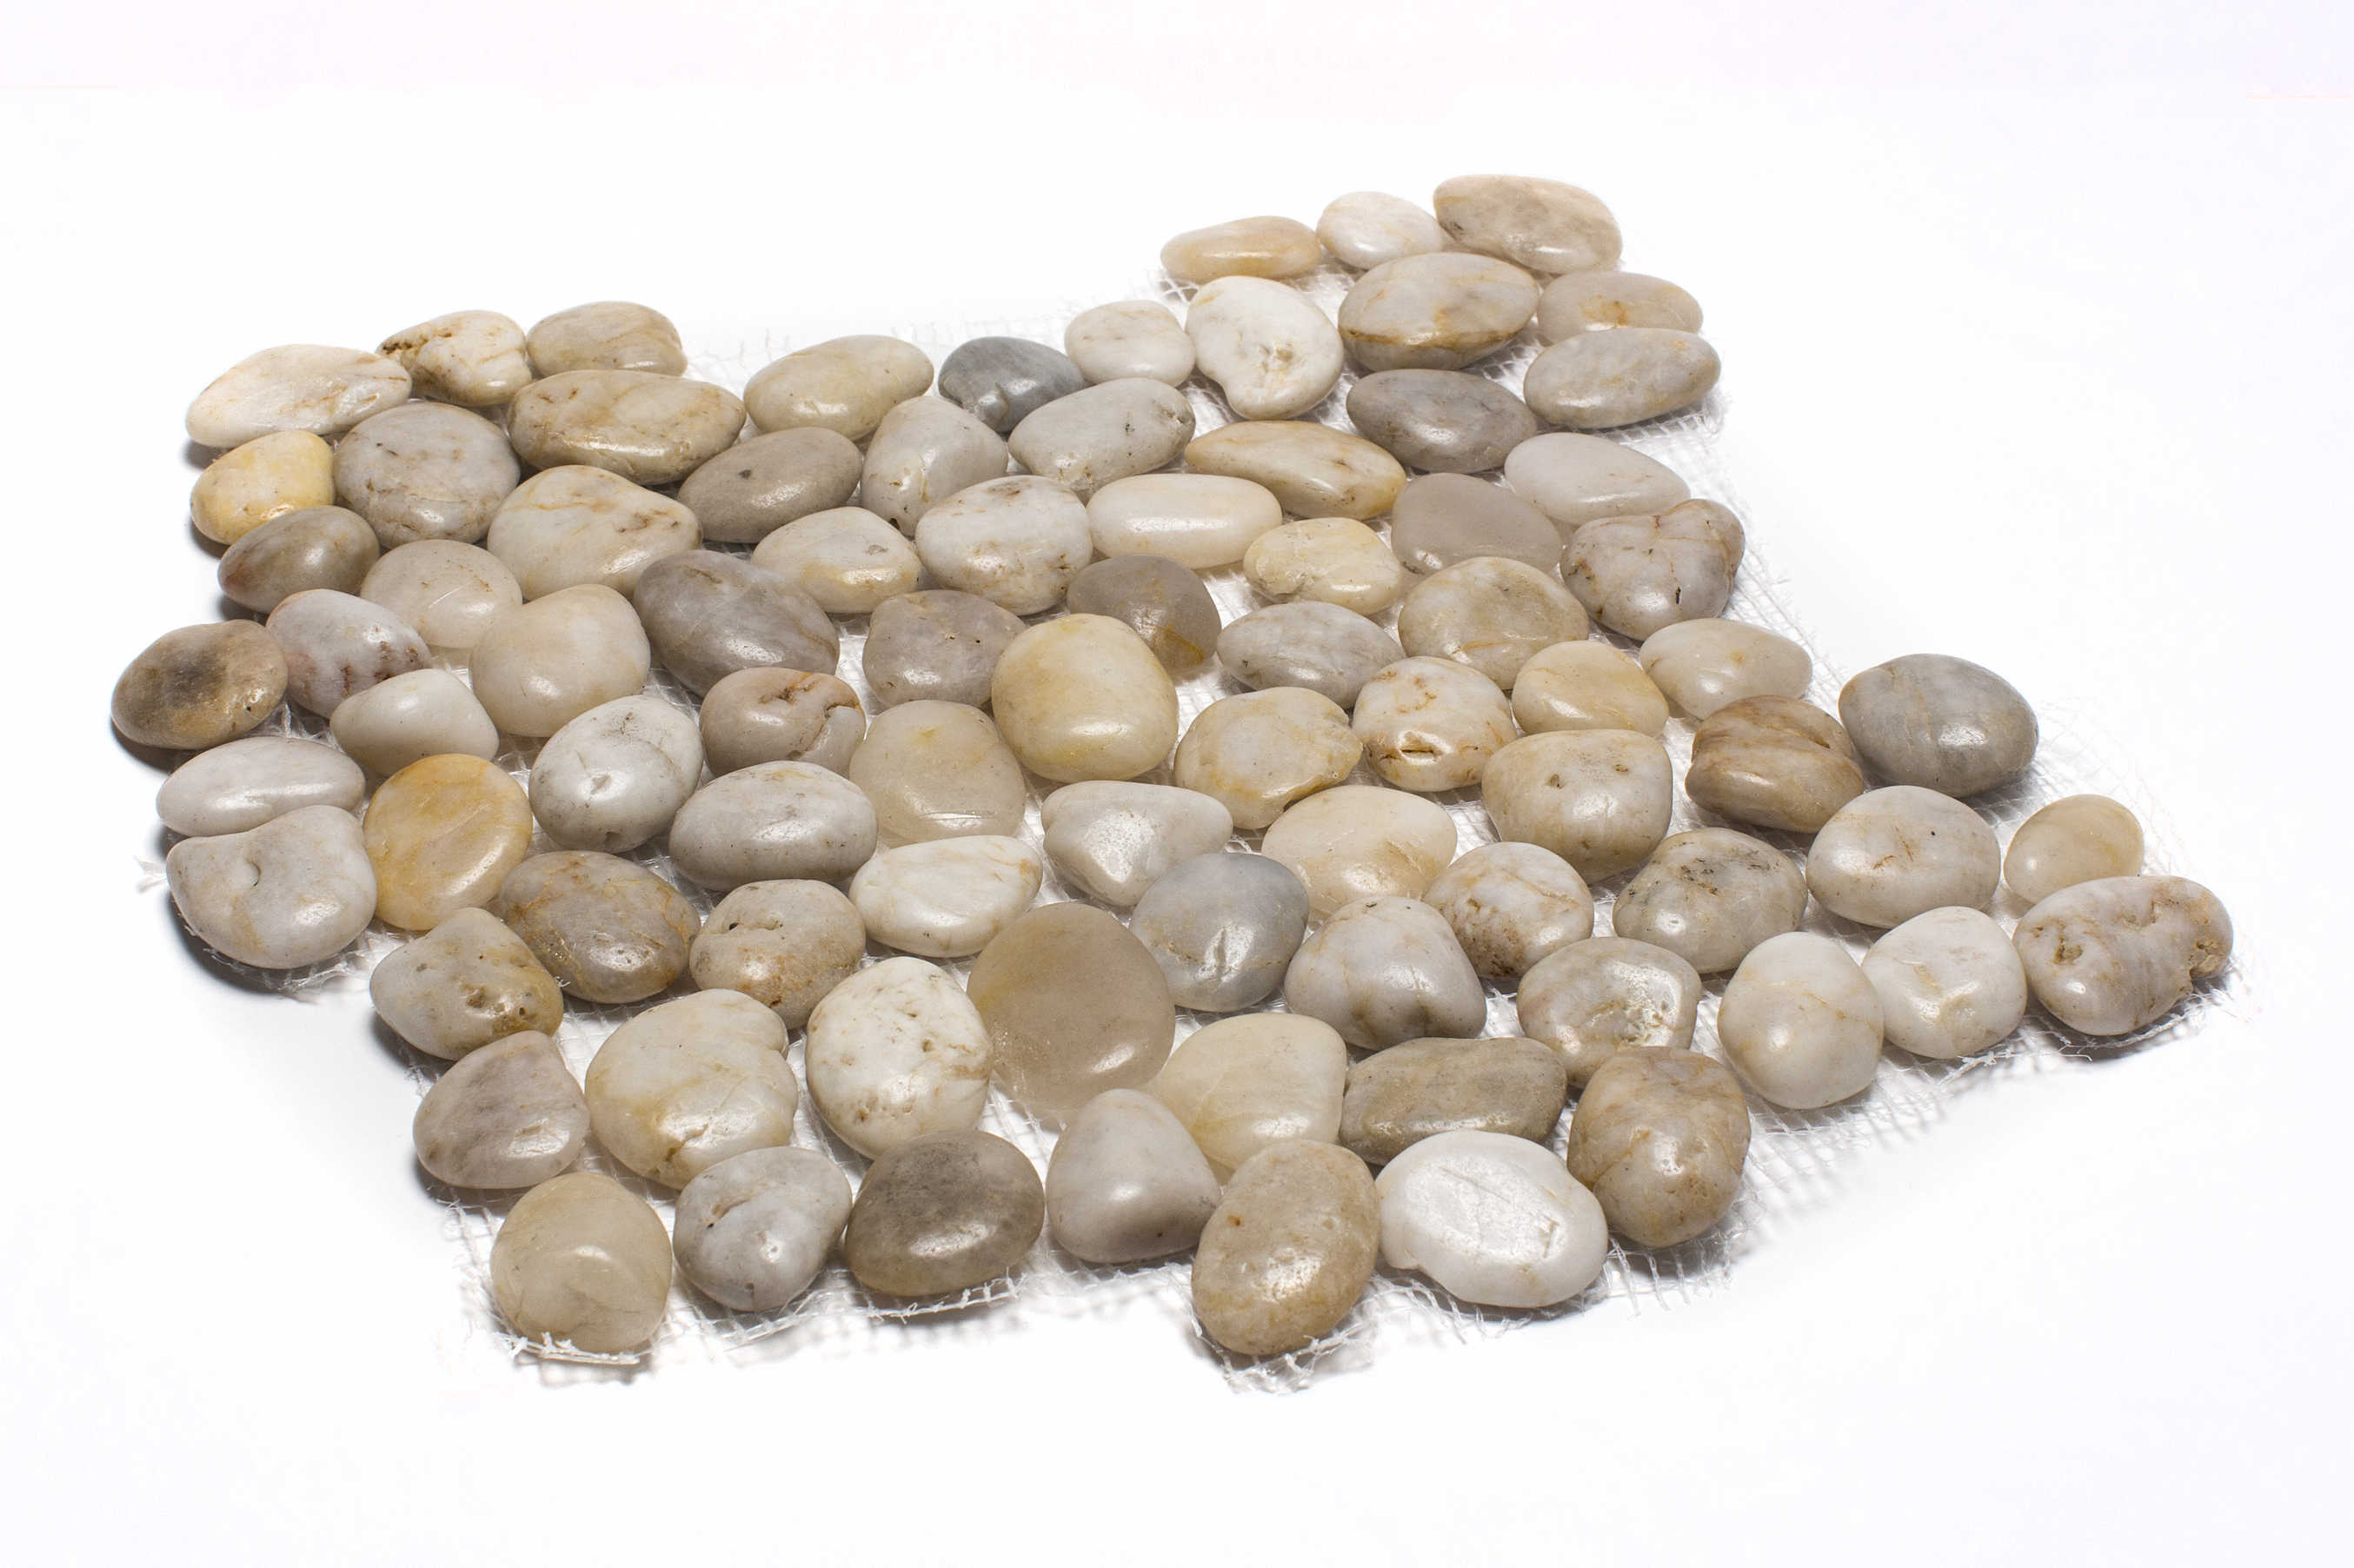 Rainforest White Mid-Polish Pebble Stone Floor and Wall Tile 12 in. x 12 in. (5.0 sq. ft. / case)